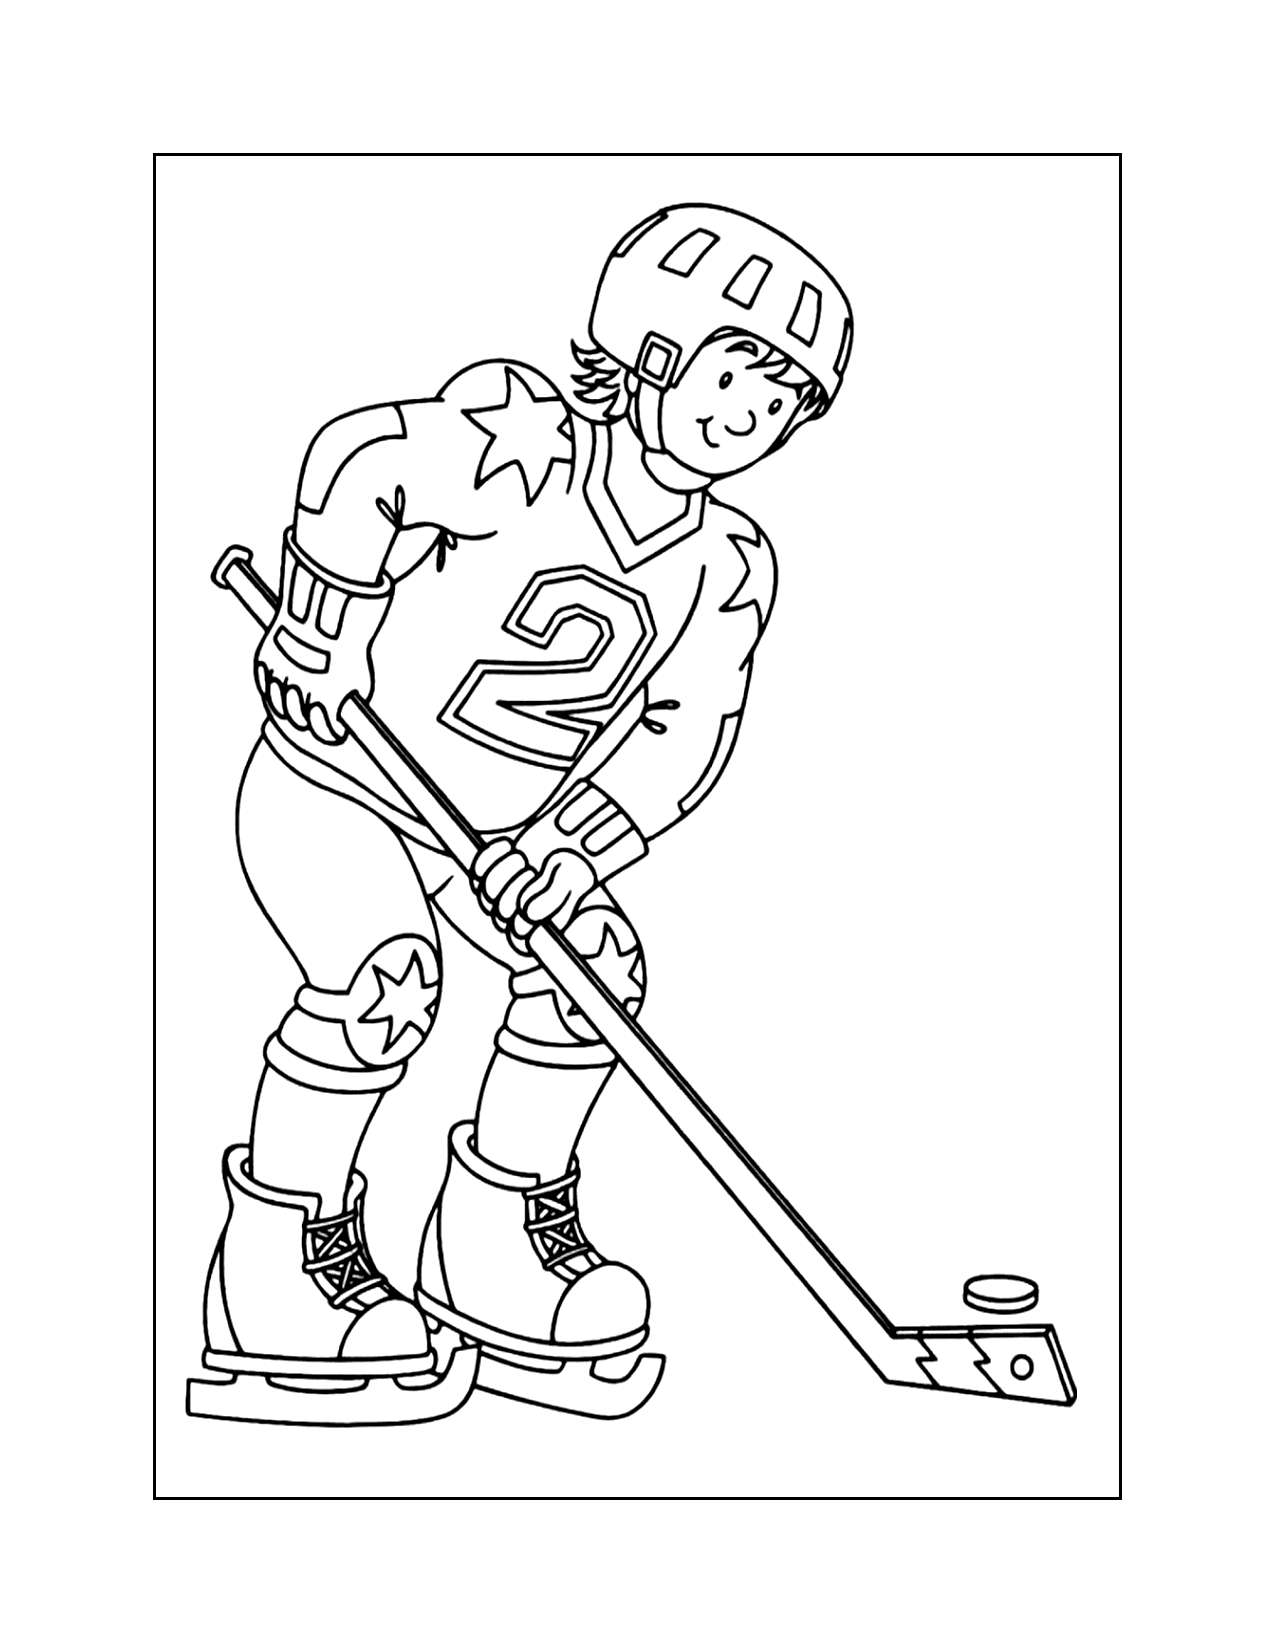 Hockey Uniform Coloring Pages